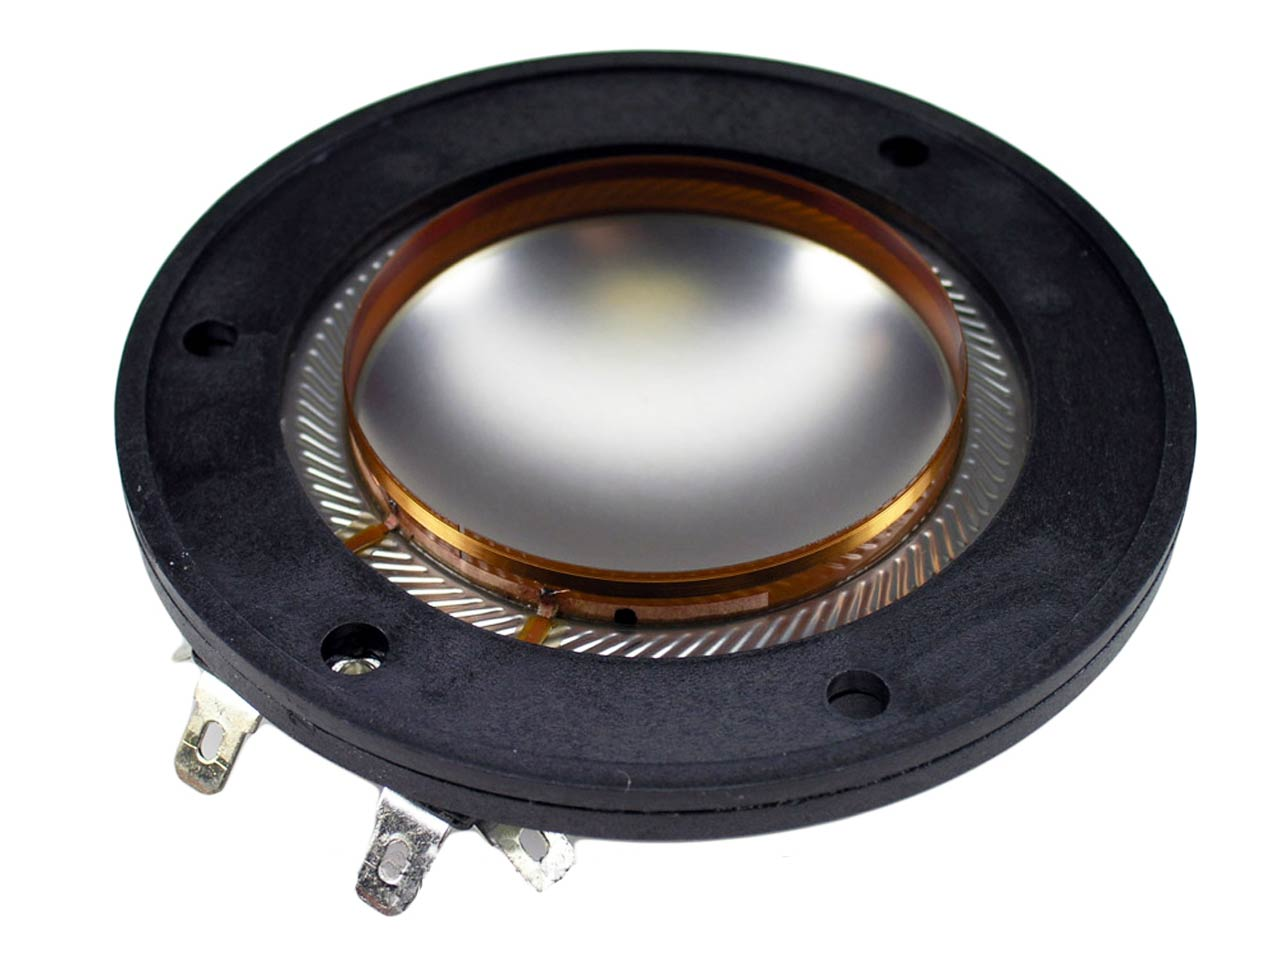 SS Audio Renkus Heinz Speaker Diaphragm